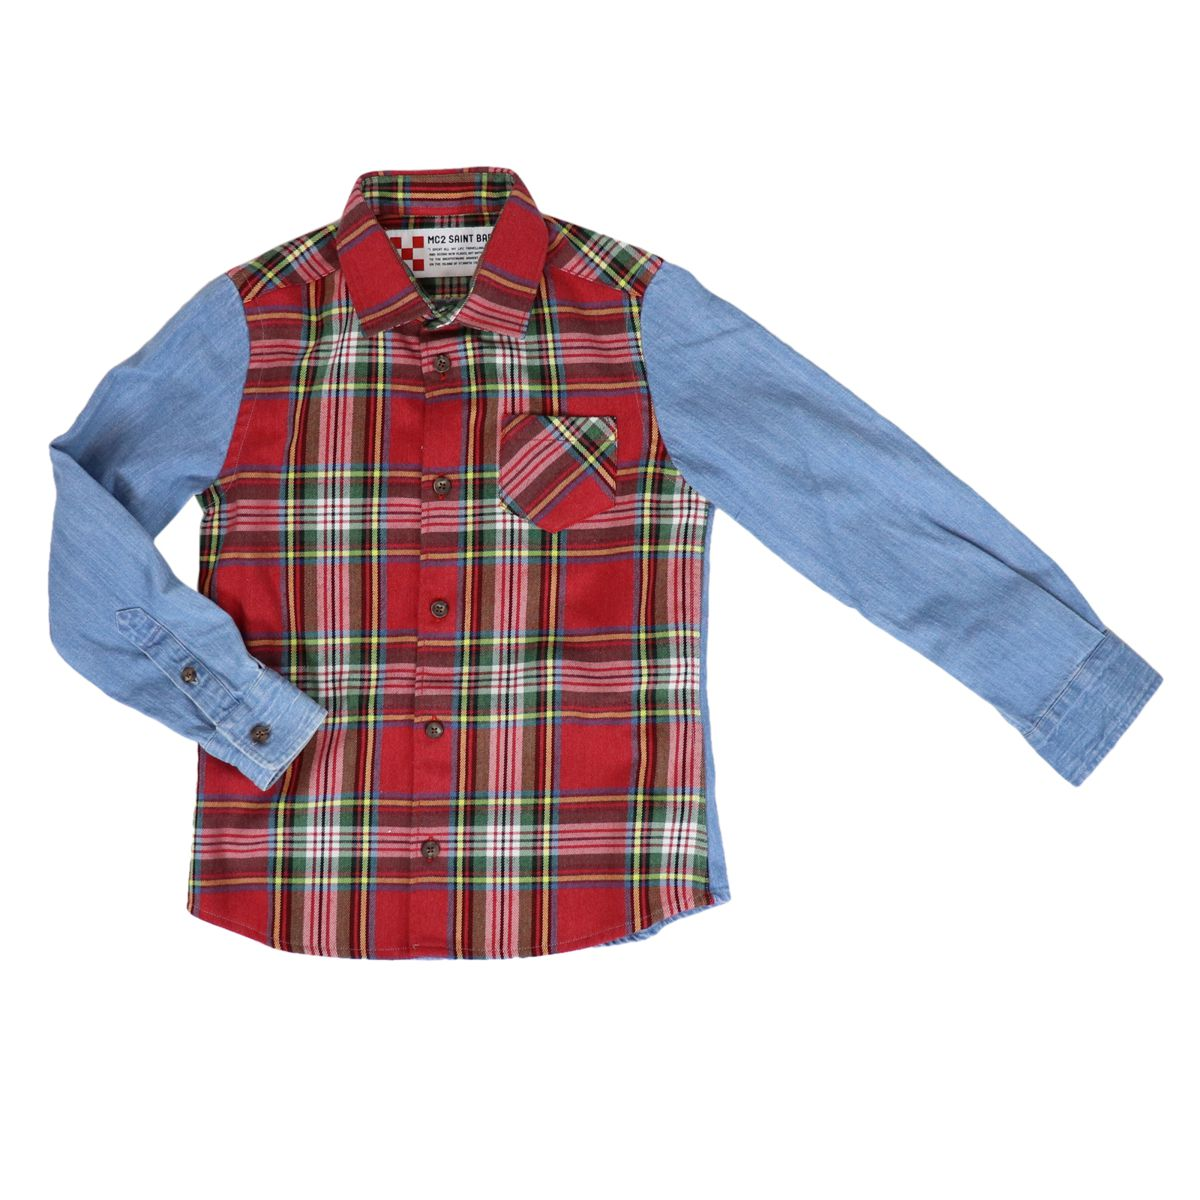 CHAMONIX madras patterned shirt with jeans effect sleeves Red MC2 Saint Barth